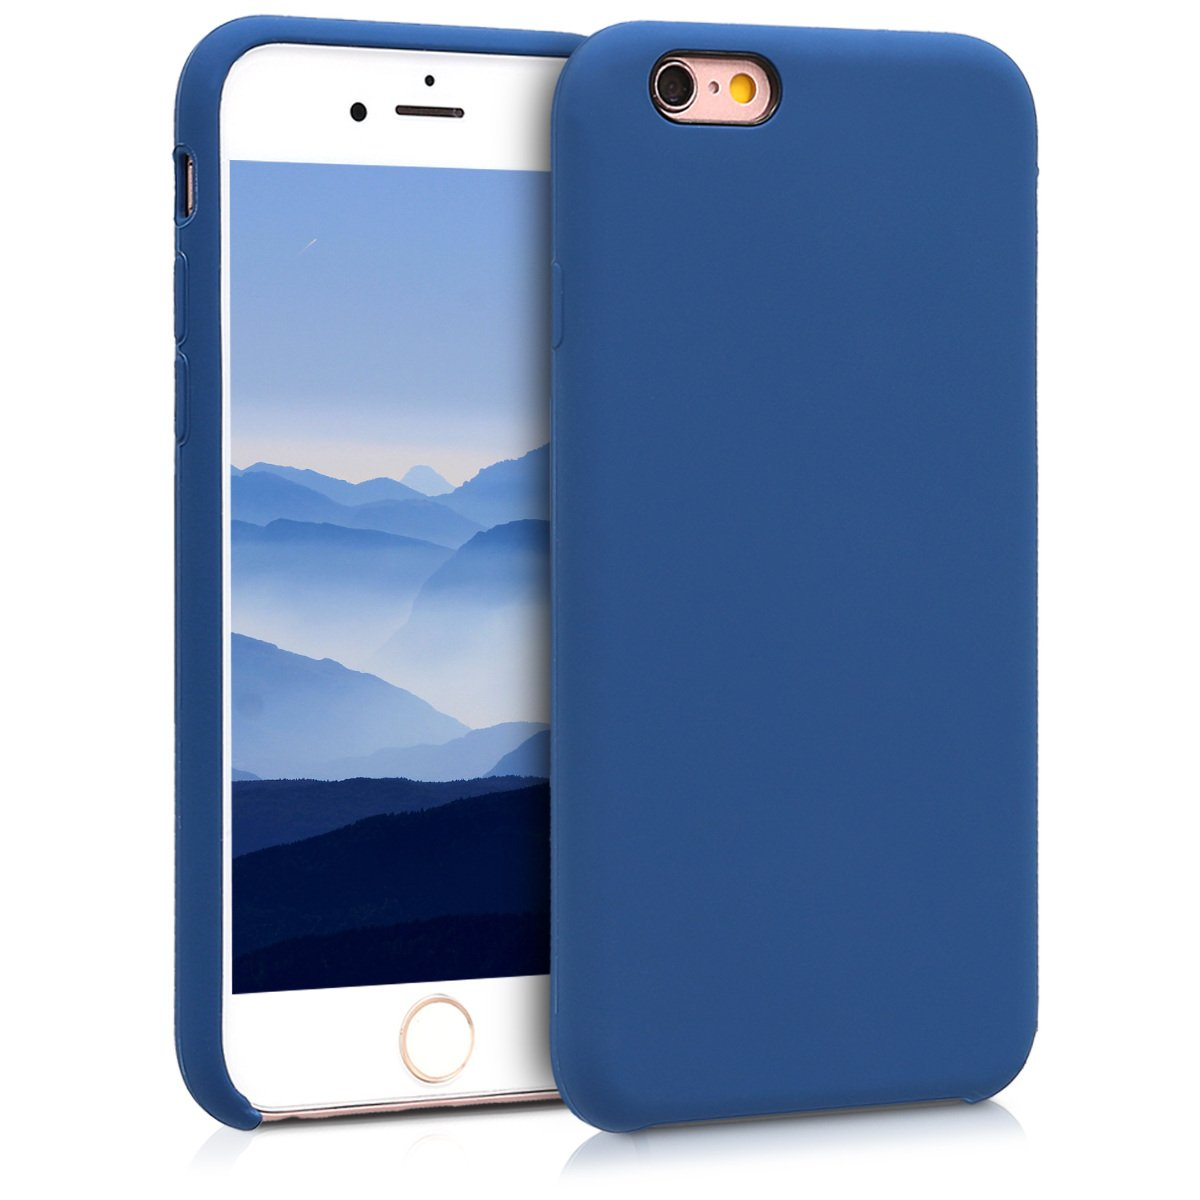 kwmobile TPU Silicone Case for Apple iPhone 6 / 6S - Soft Flexible Rubber Protective Cover - Navy Blue